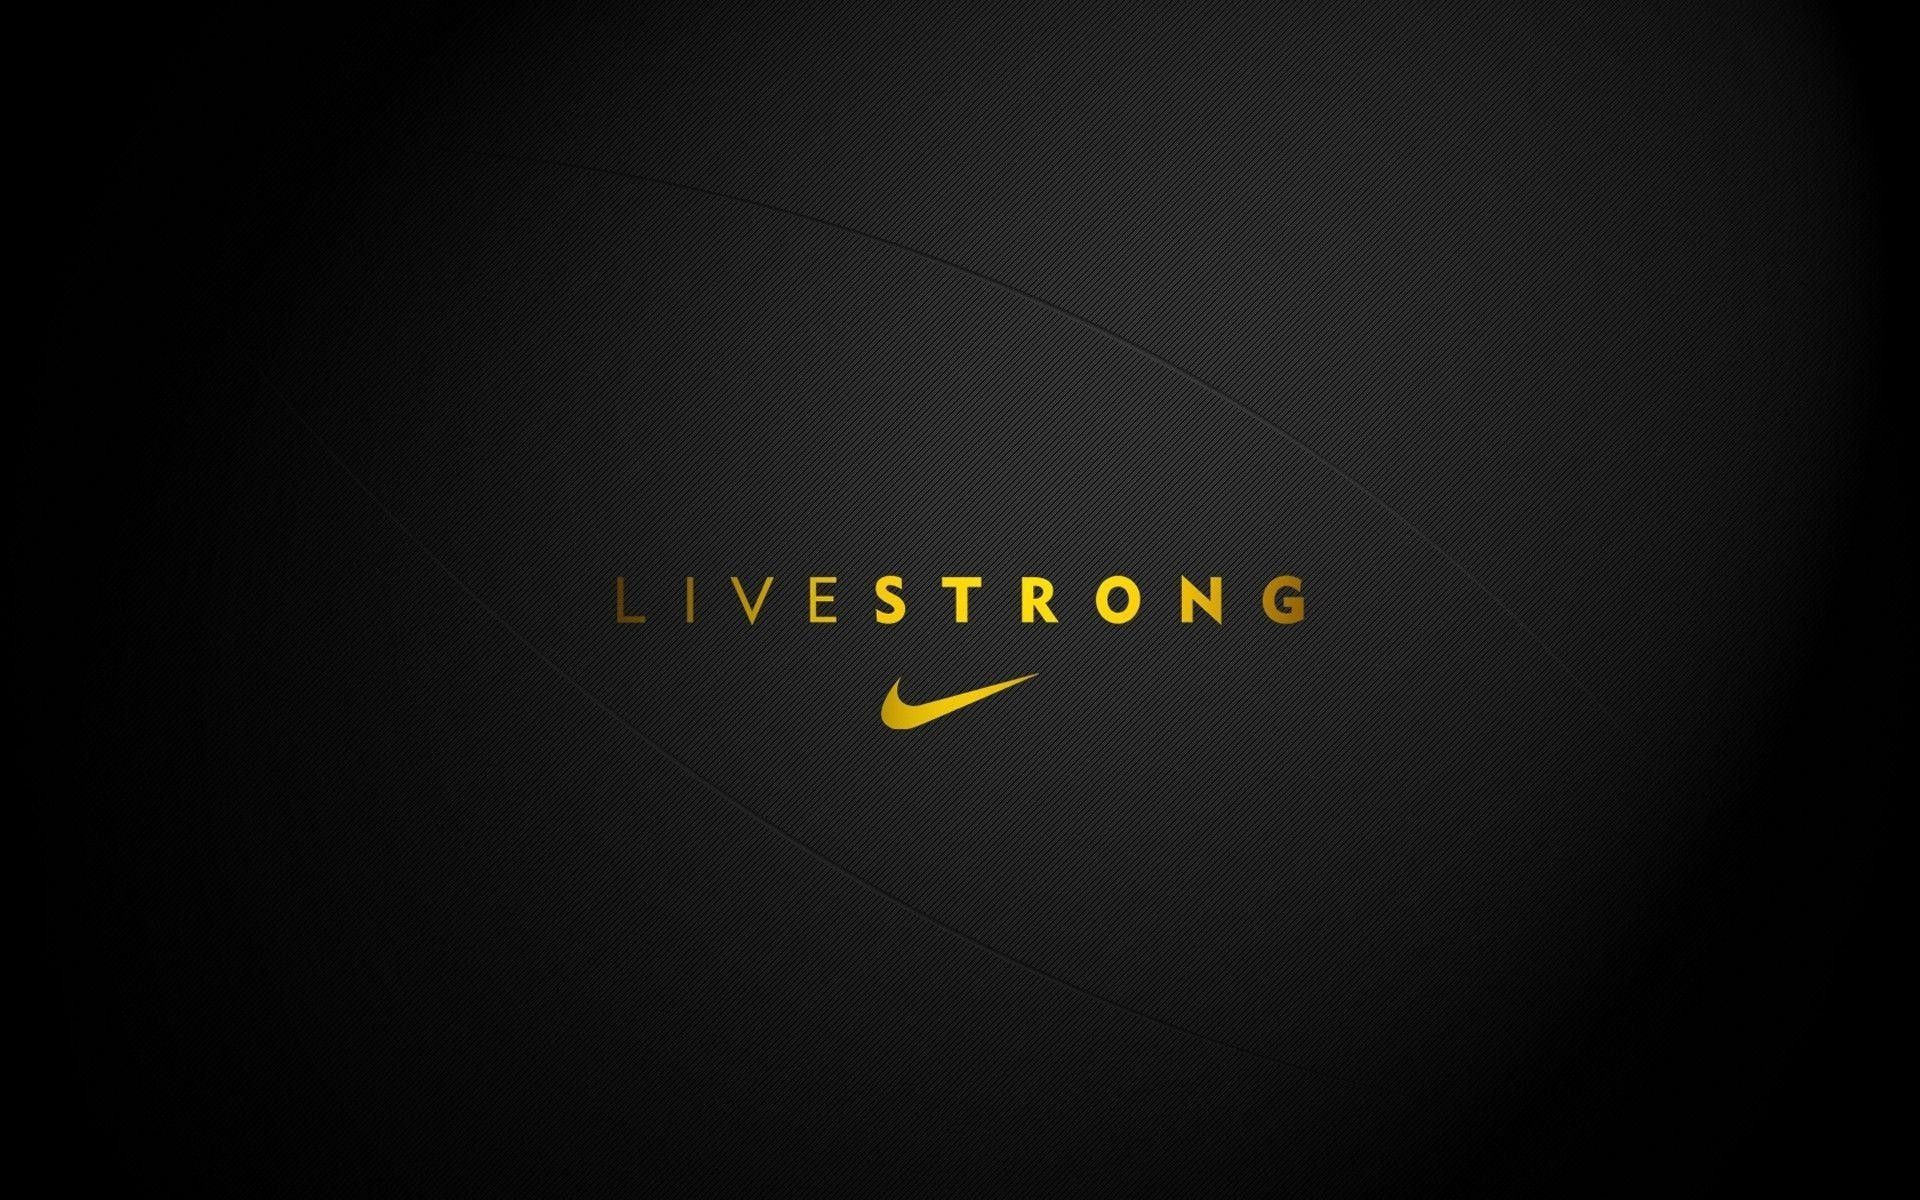 1920x1200 Live Strong Nike Nikes Wallpapers Latest , Free Widescreen HD .